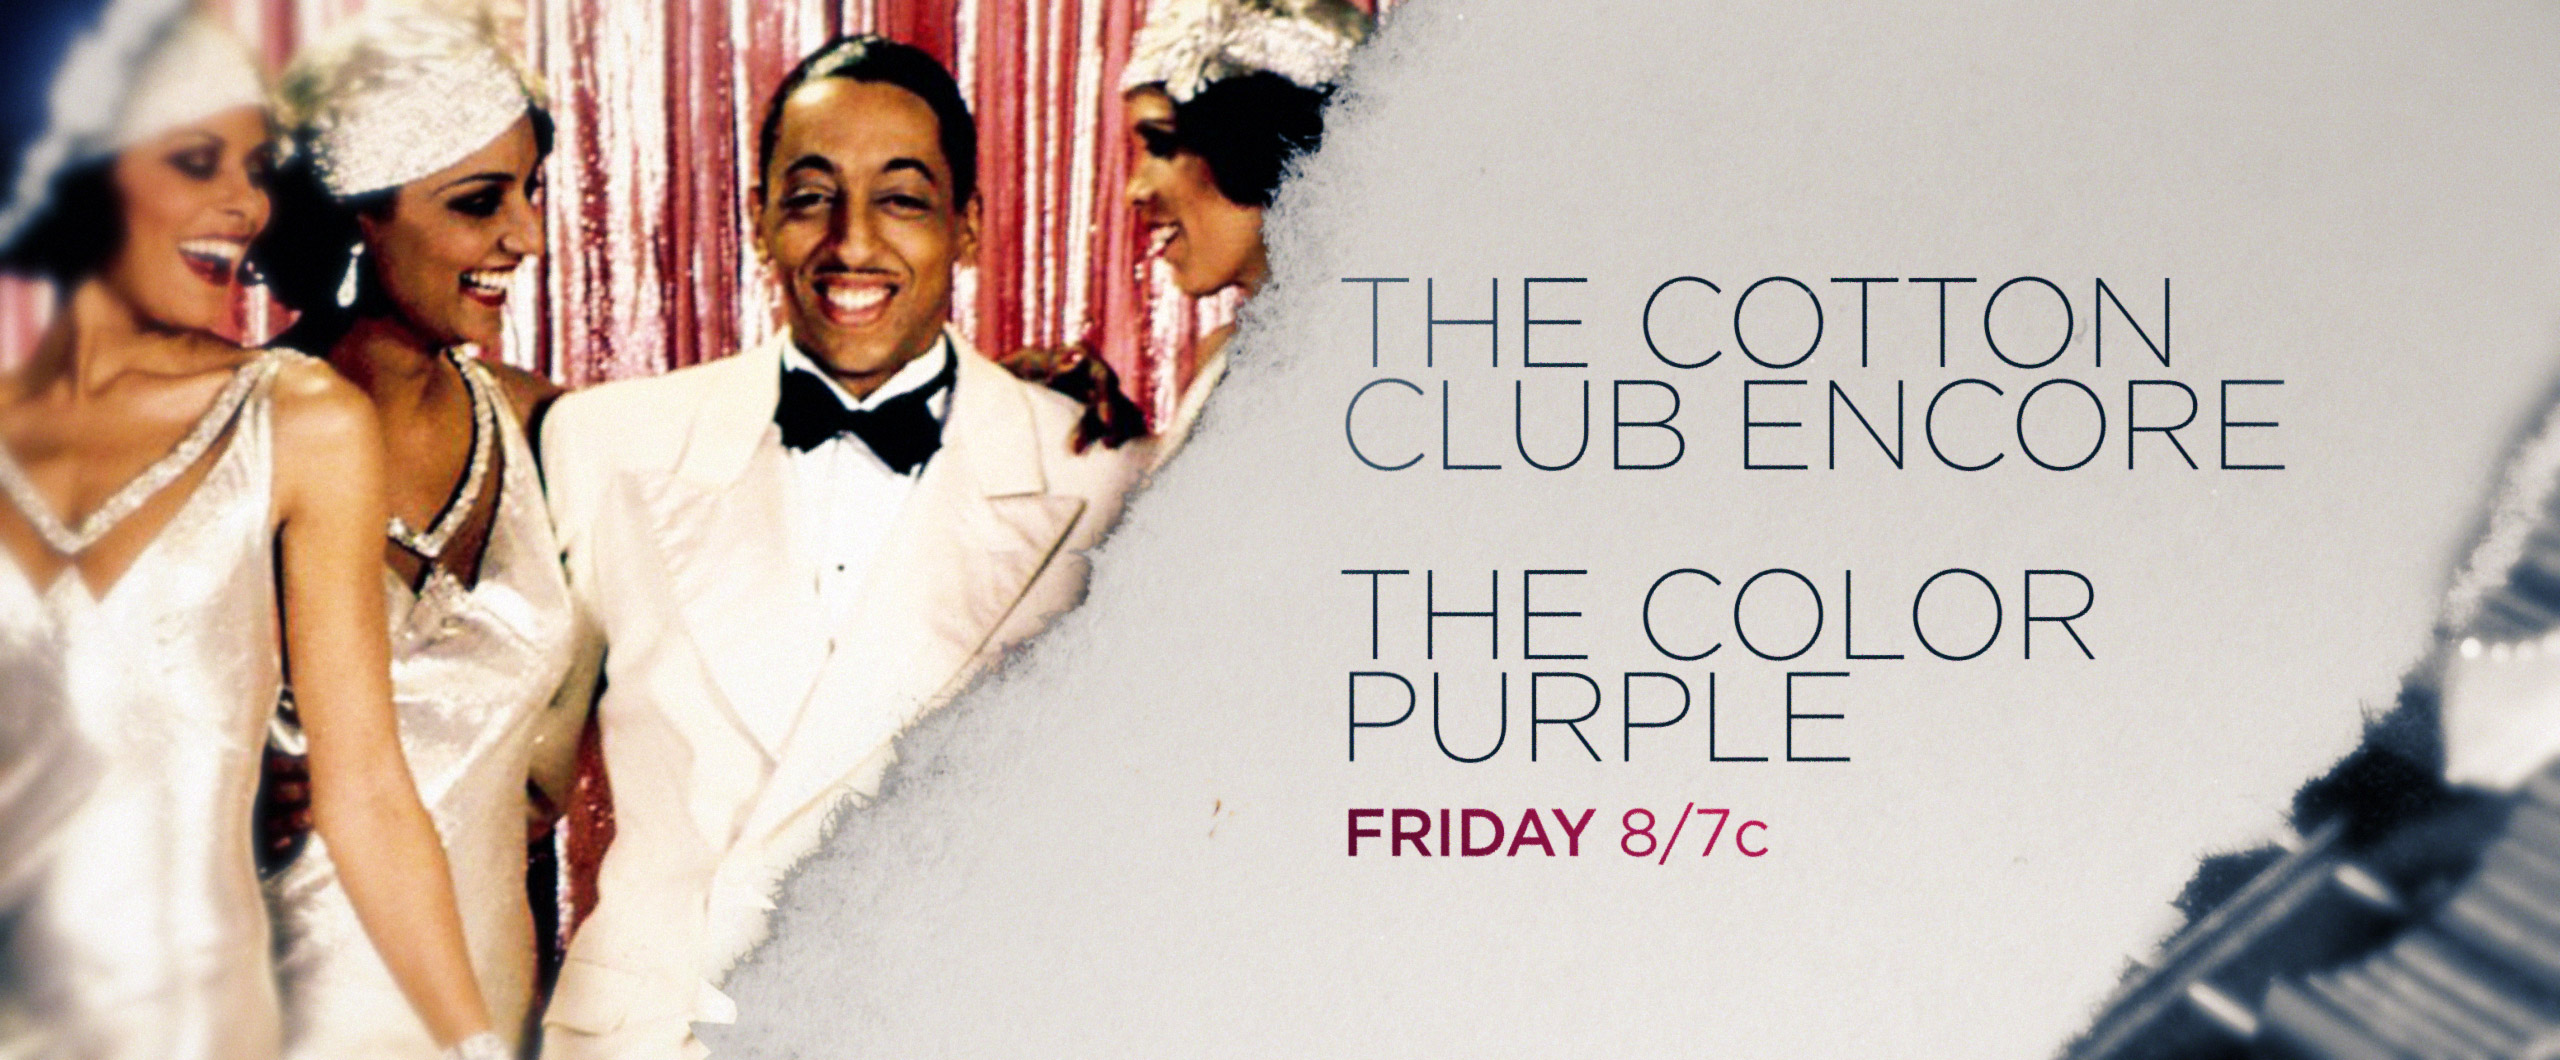 The Cotton Club_Color Purple_Friday